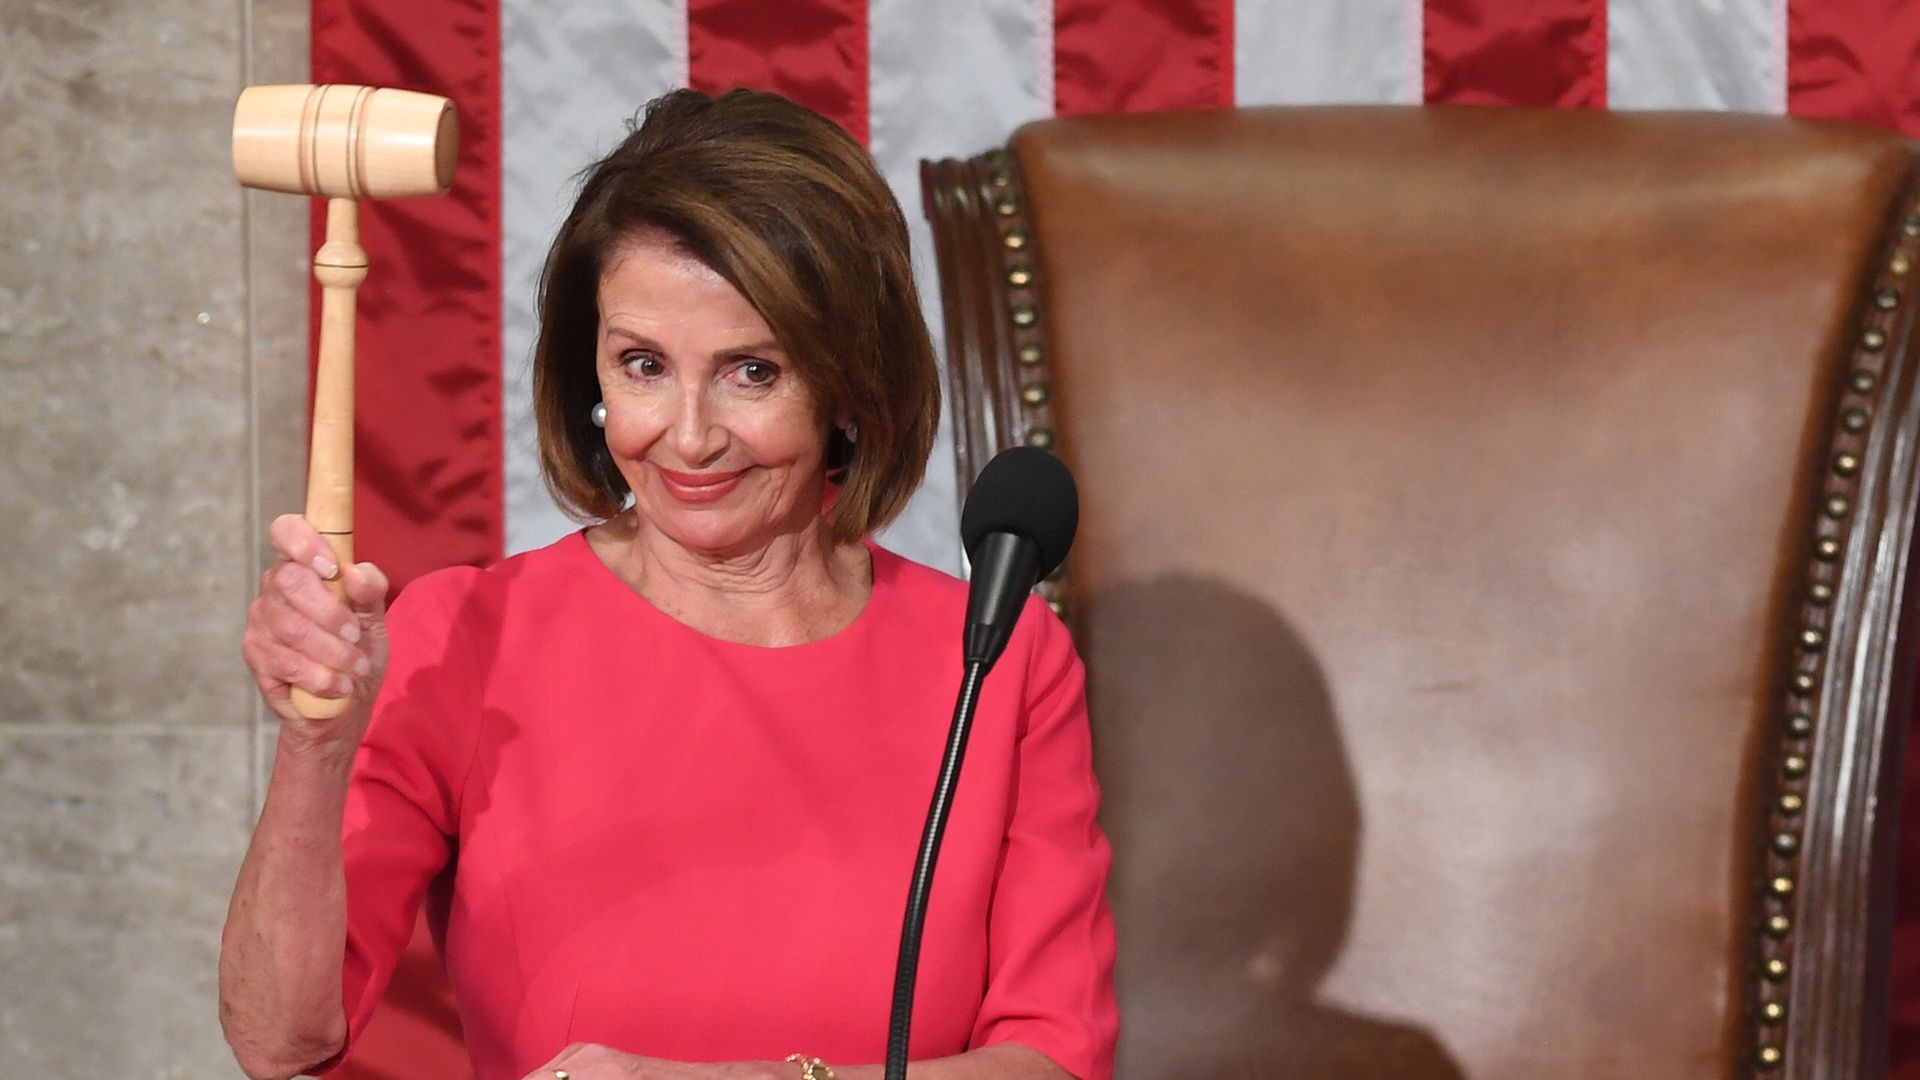 In this image, Pelosi holds a gavel up.